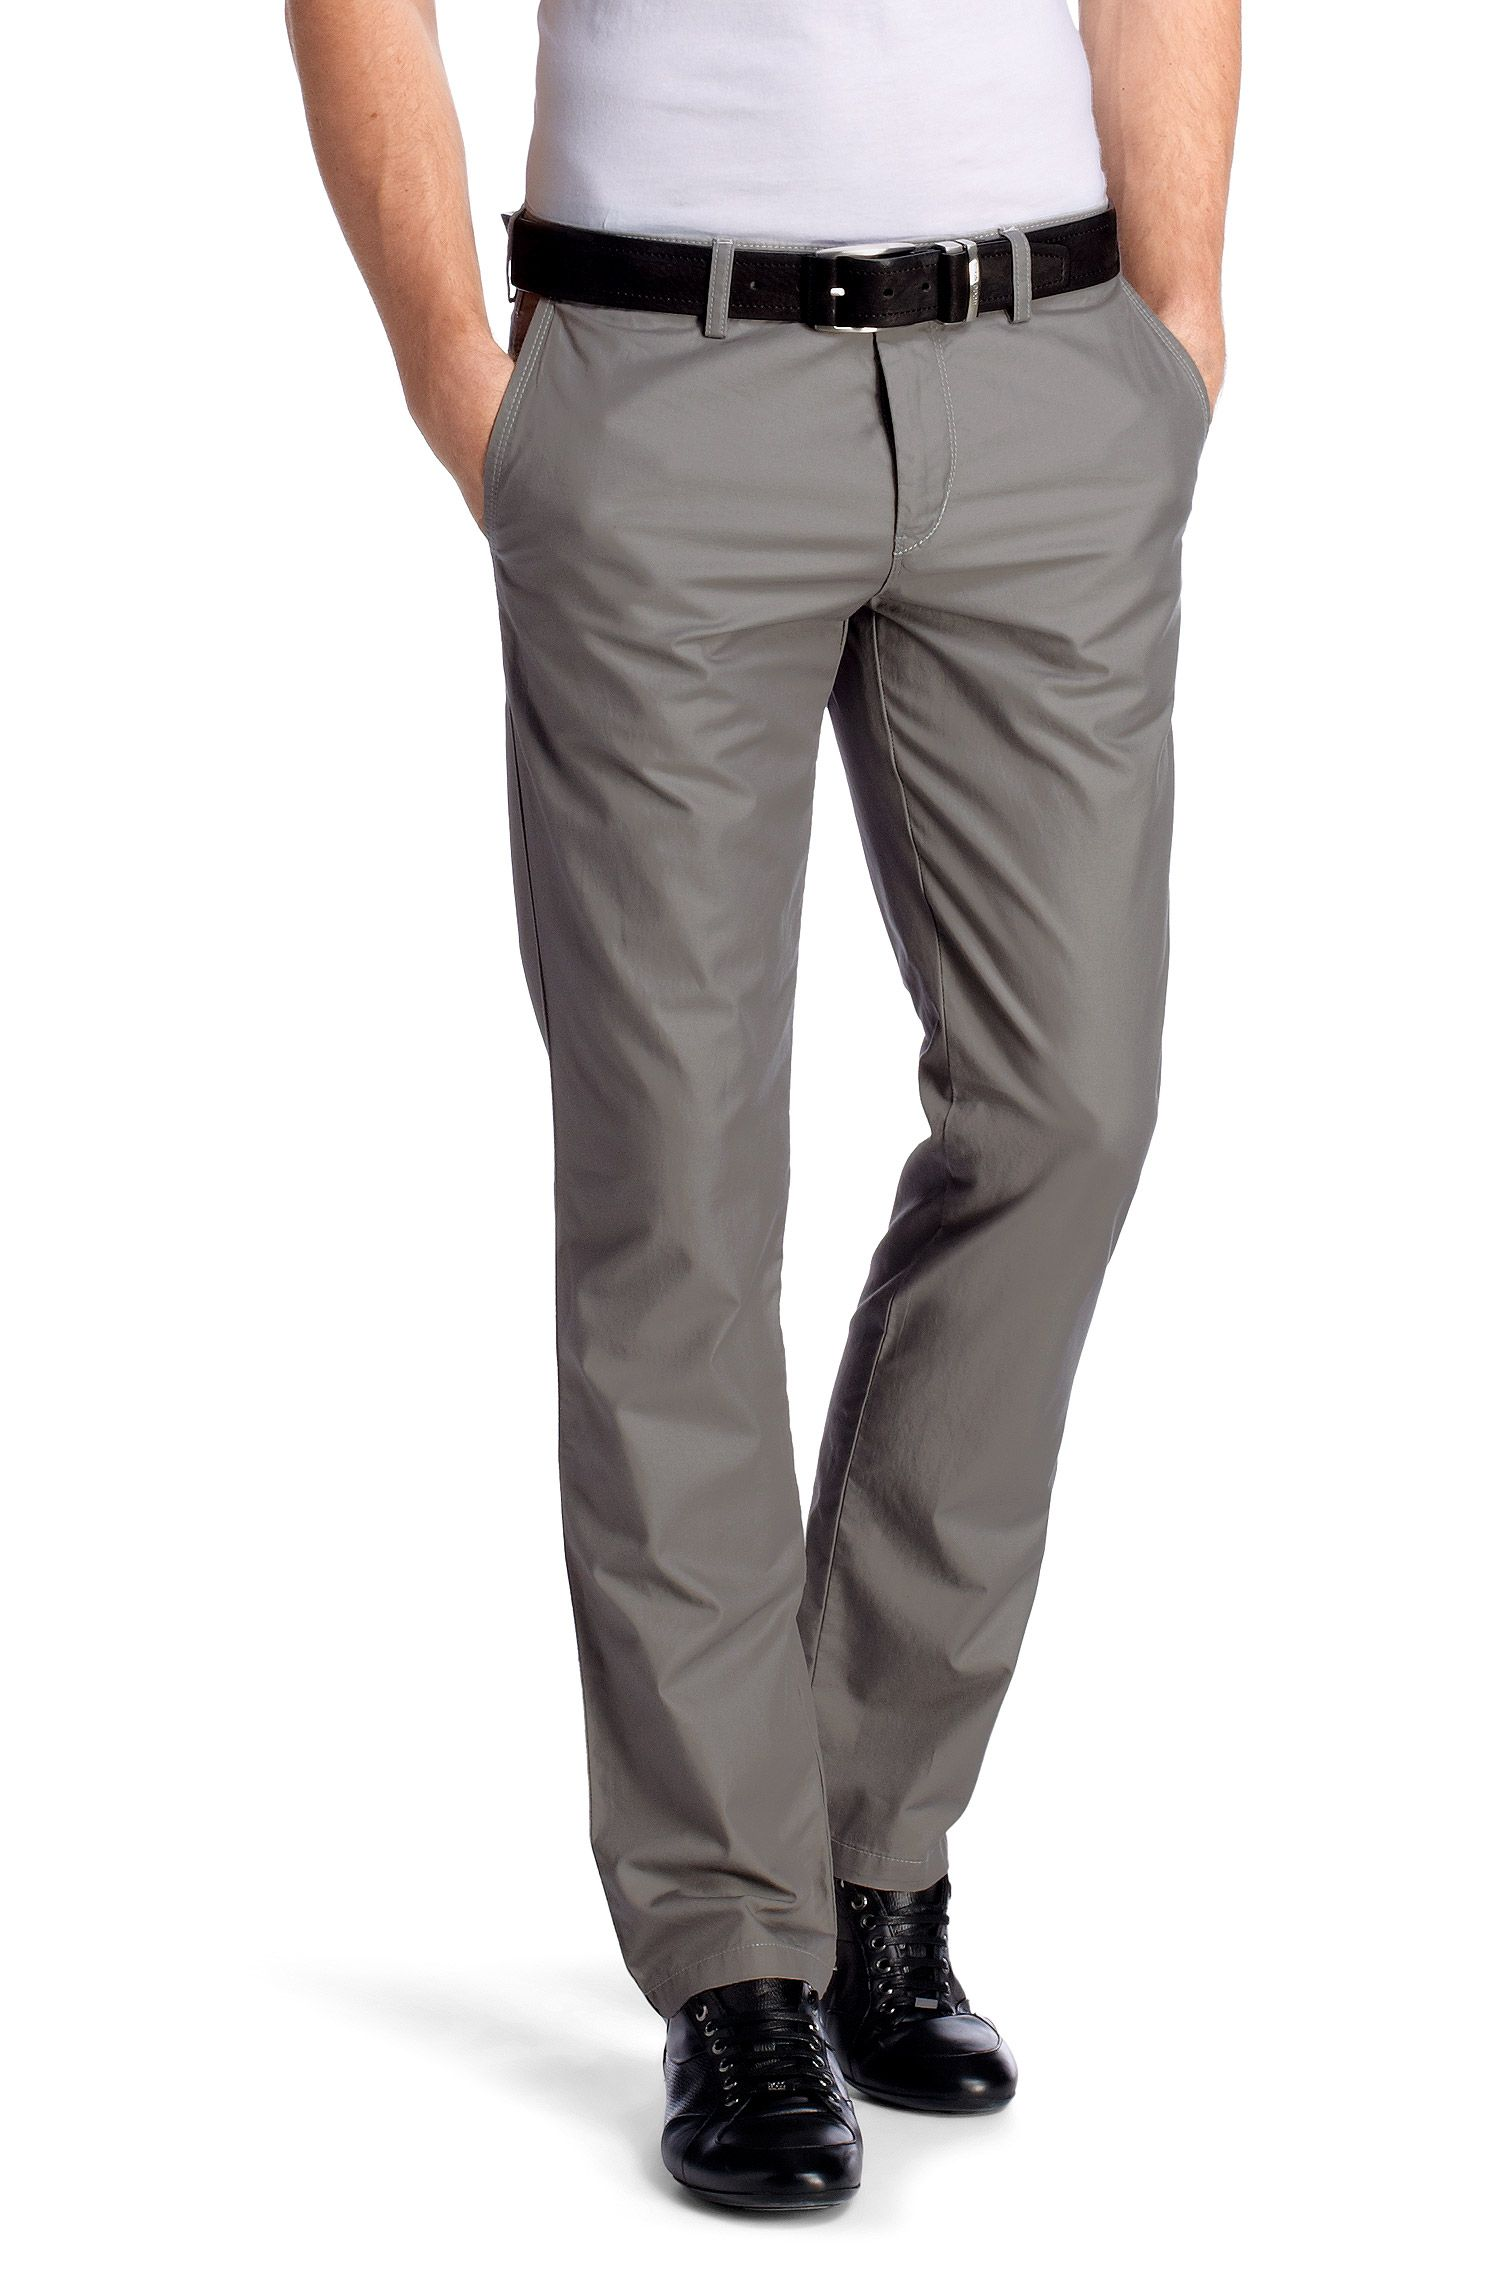 Pantalon chino Regular Straight Fit, Crigan1-3-W